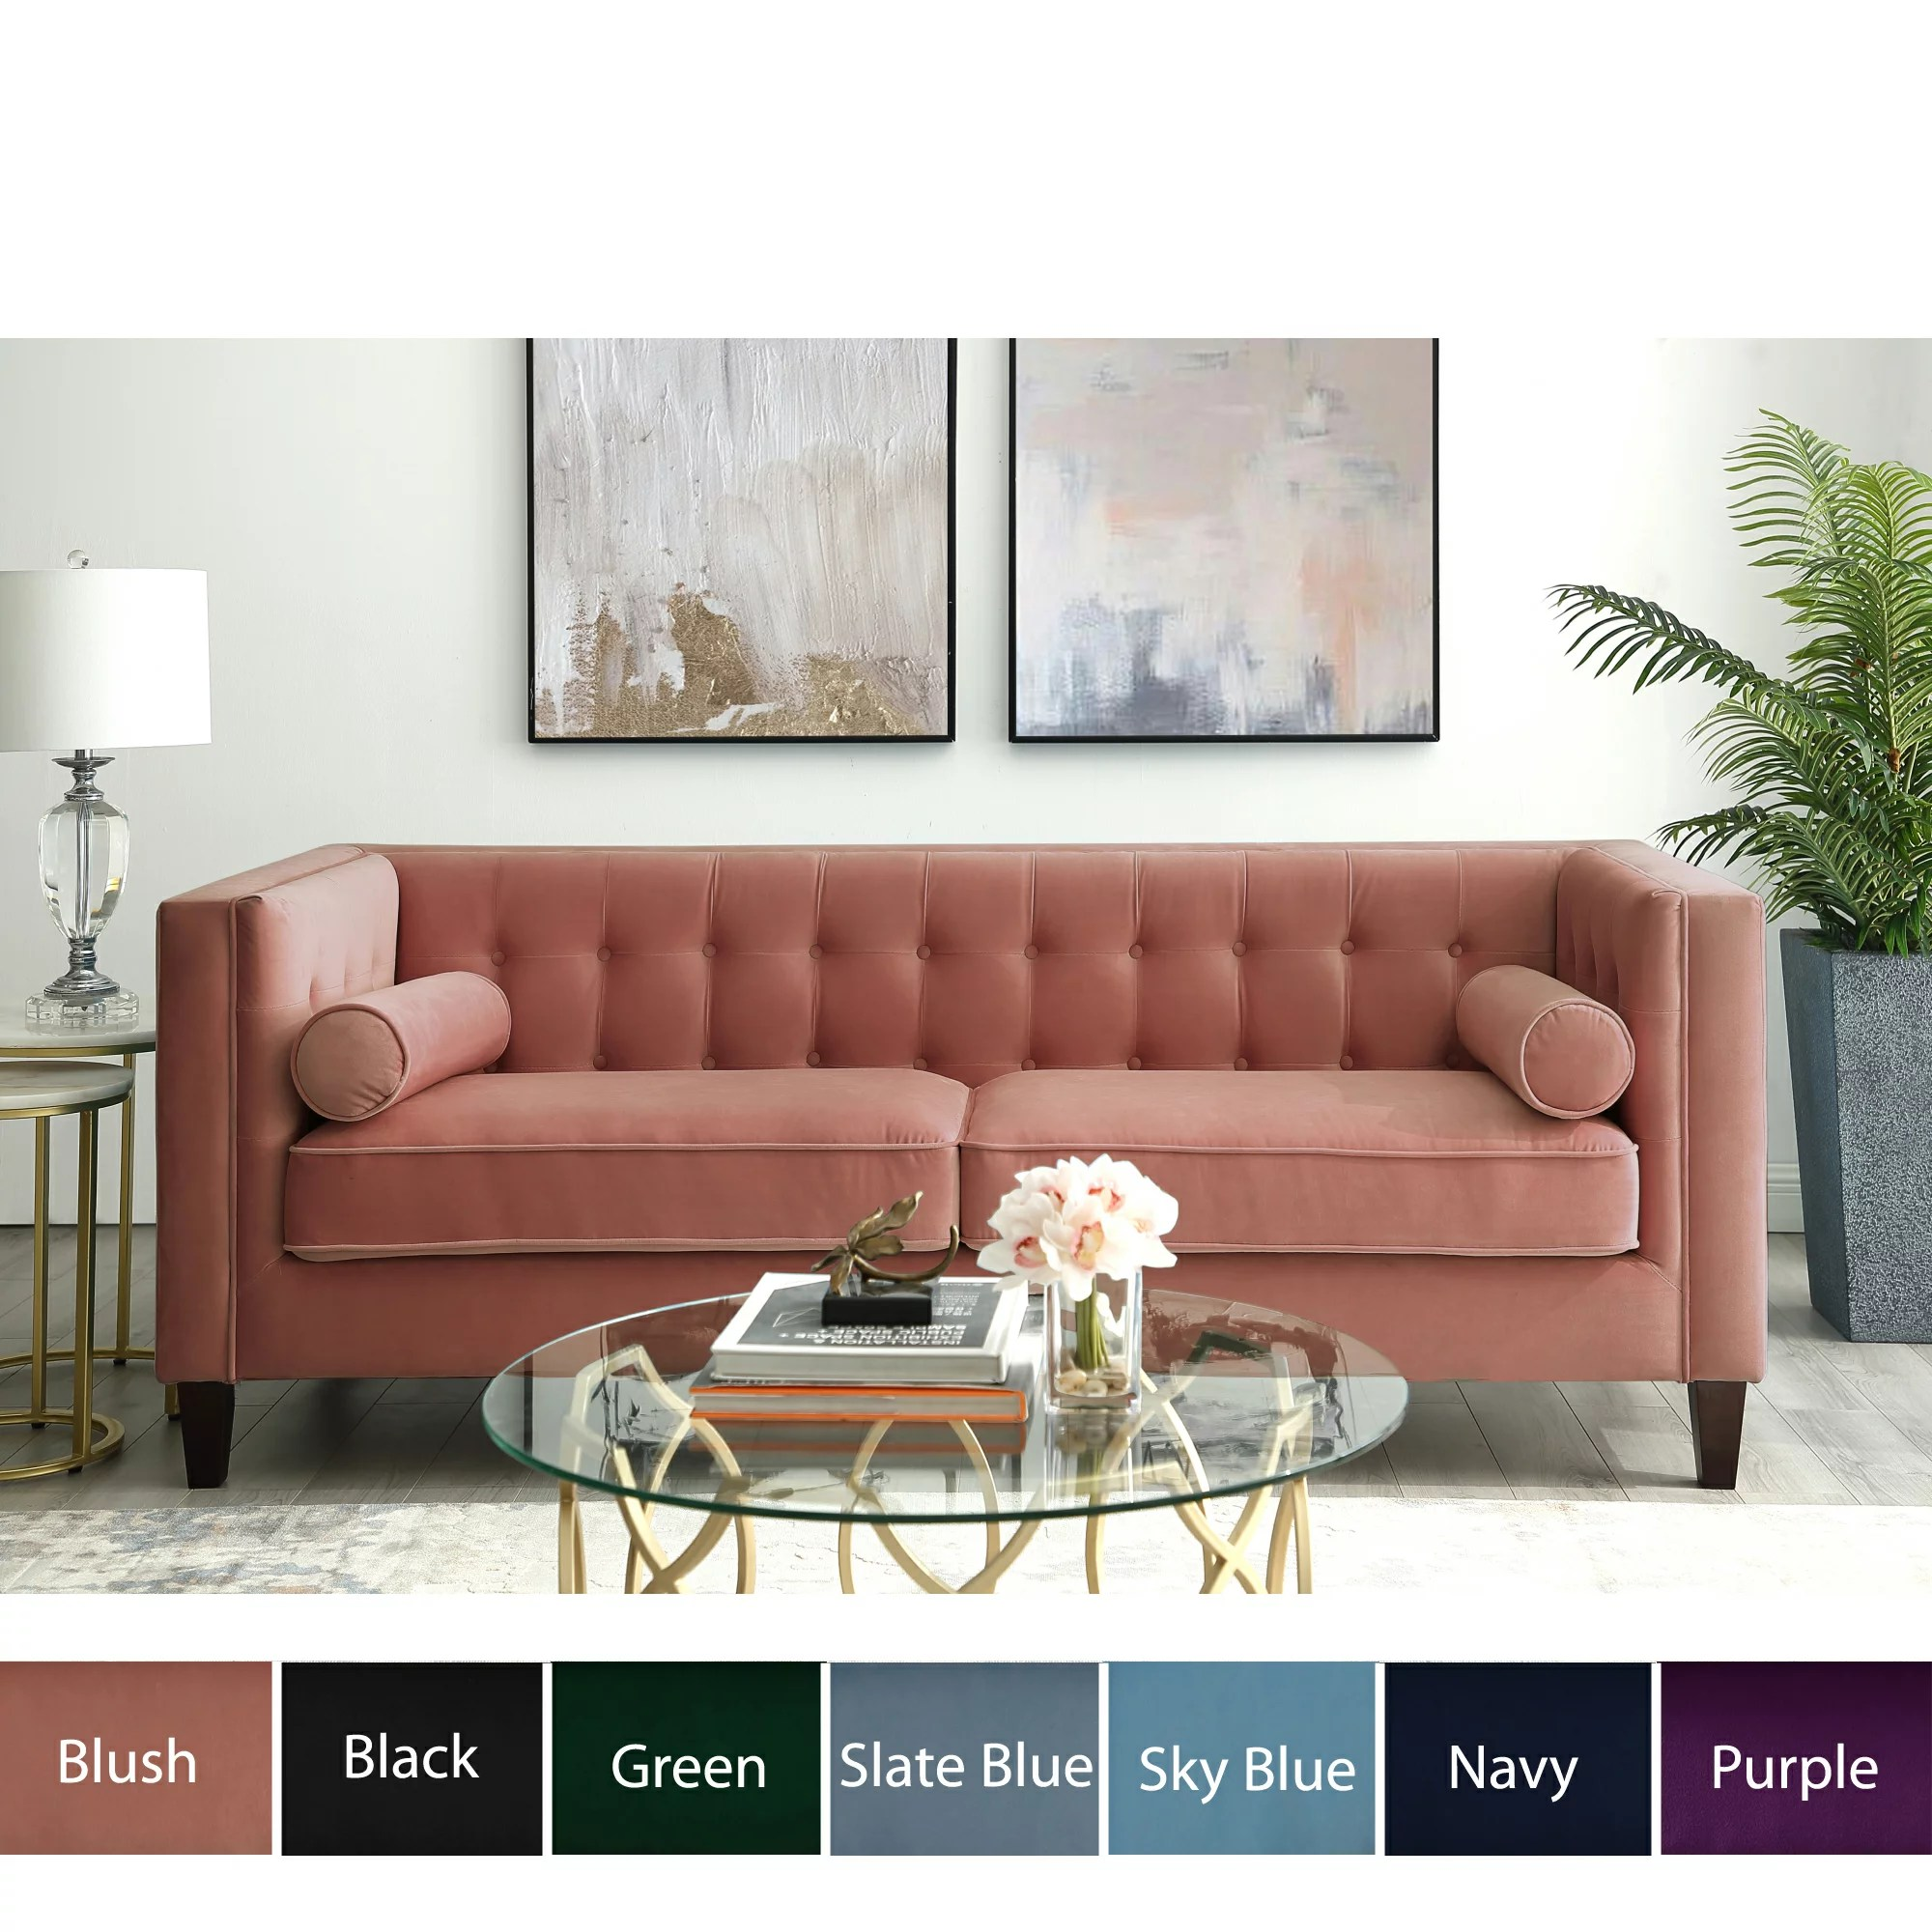 Square Sofa Kenn Velvet Tufted Sofa Square Arms Tapered Legs Modern Contemporary Inspired Home